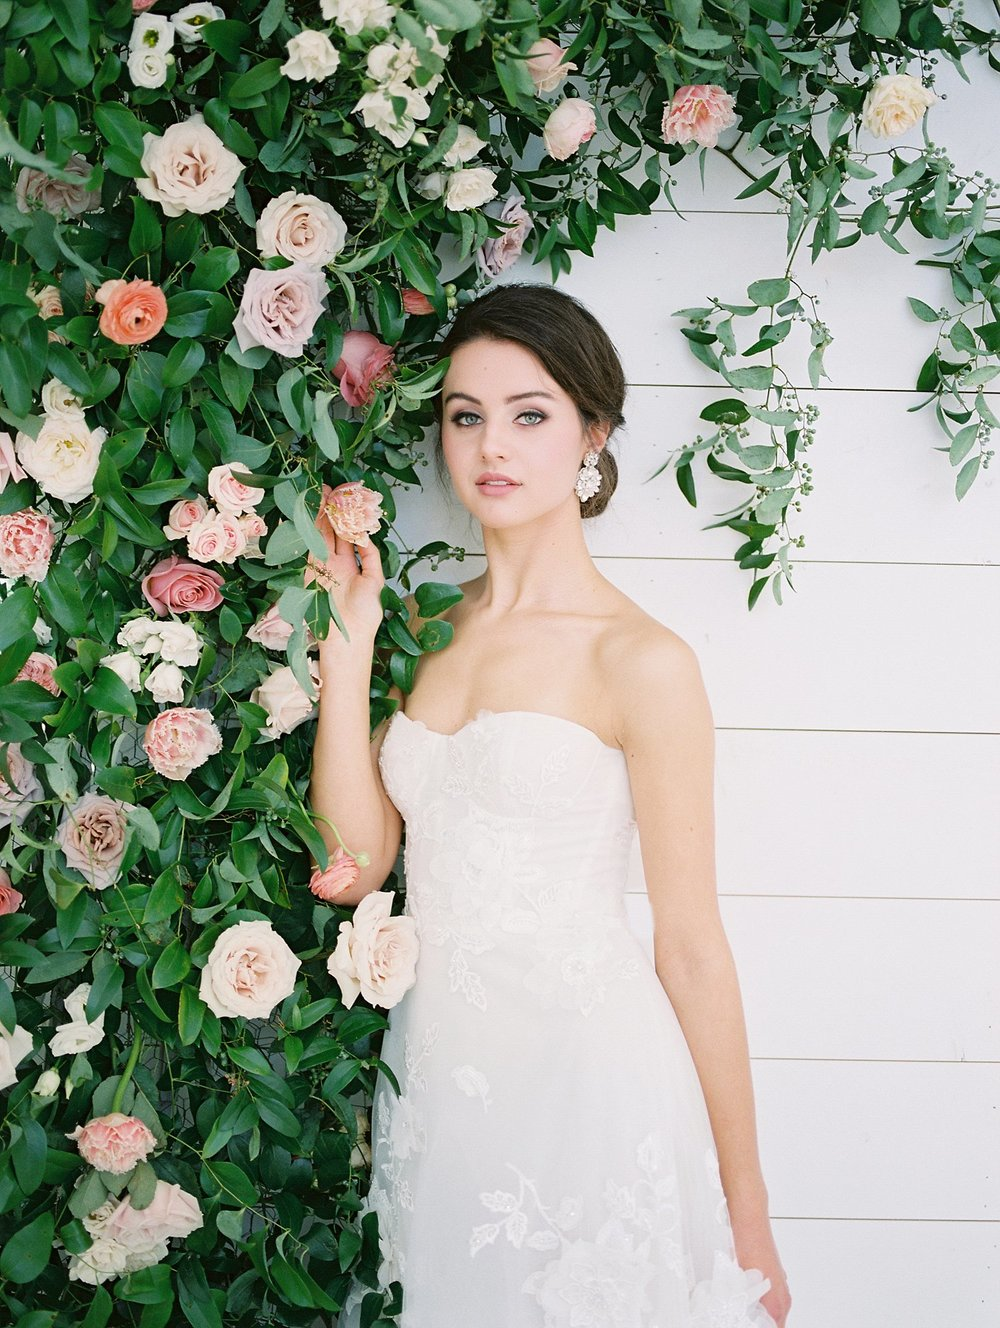 Bride standing next to a rose bush